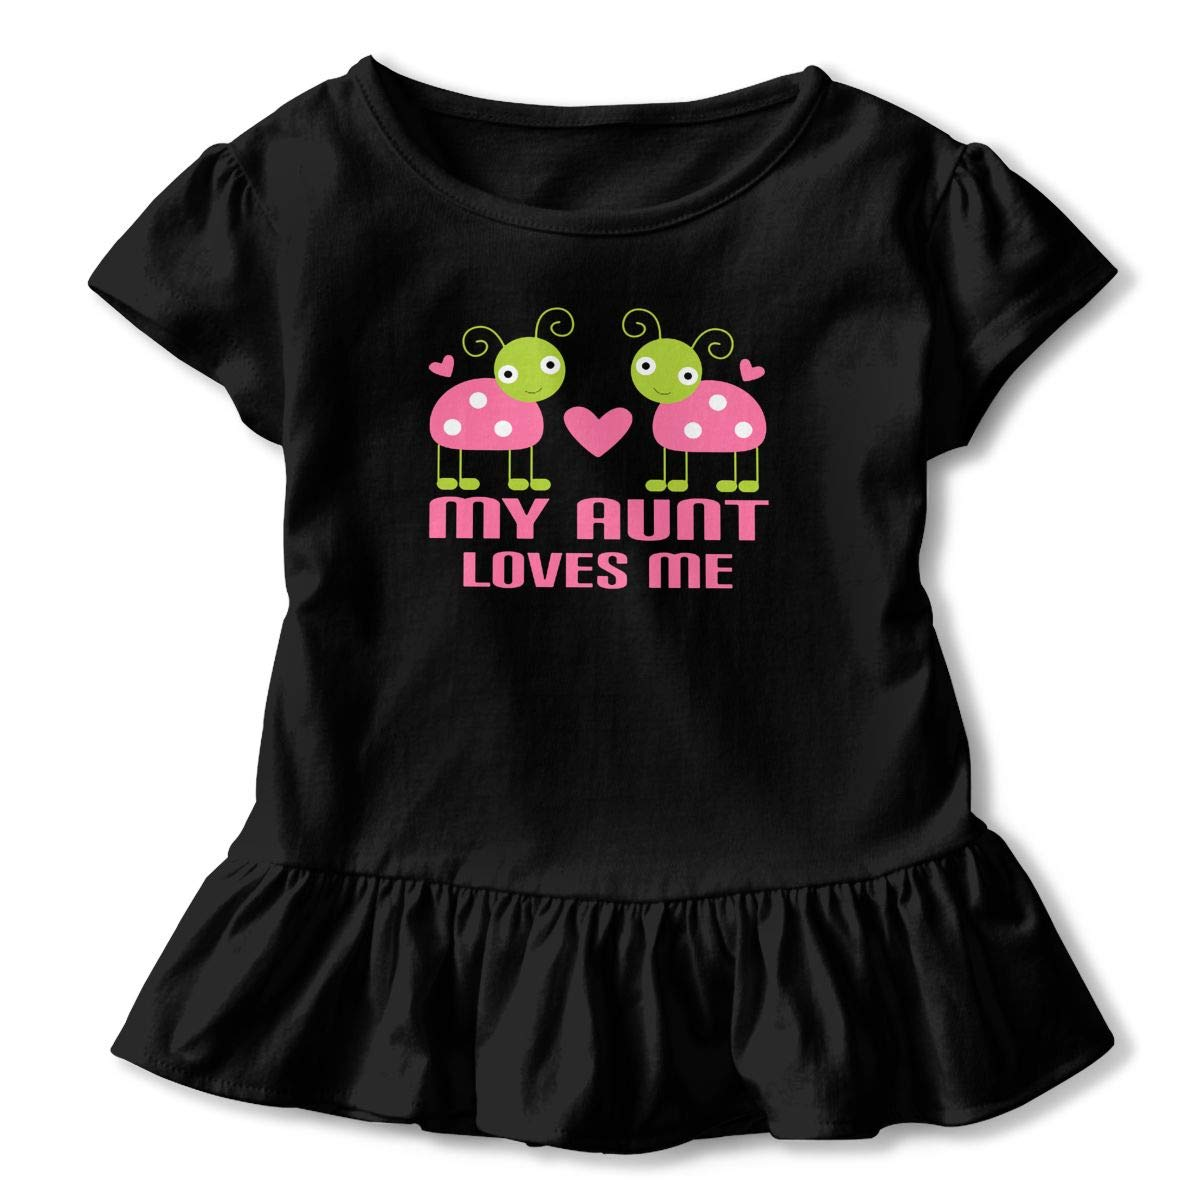 My Aunt Loves Me Toddler Baby Girl Ruffle Short Sleeve T-Shirt Soft Cotton T Shirts